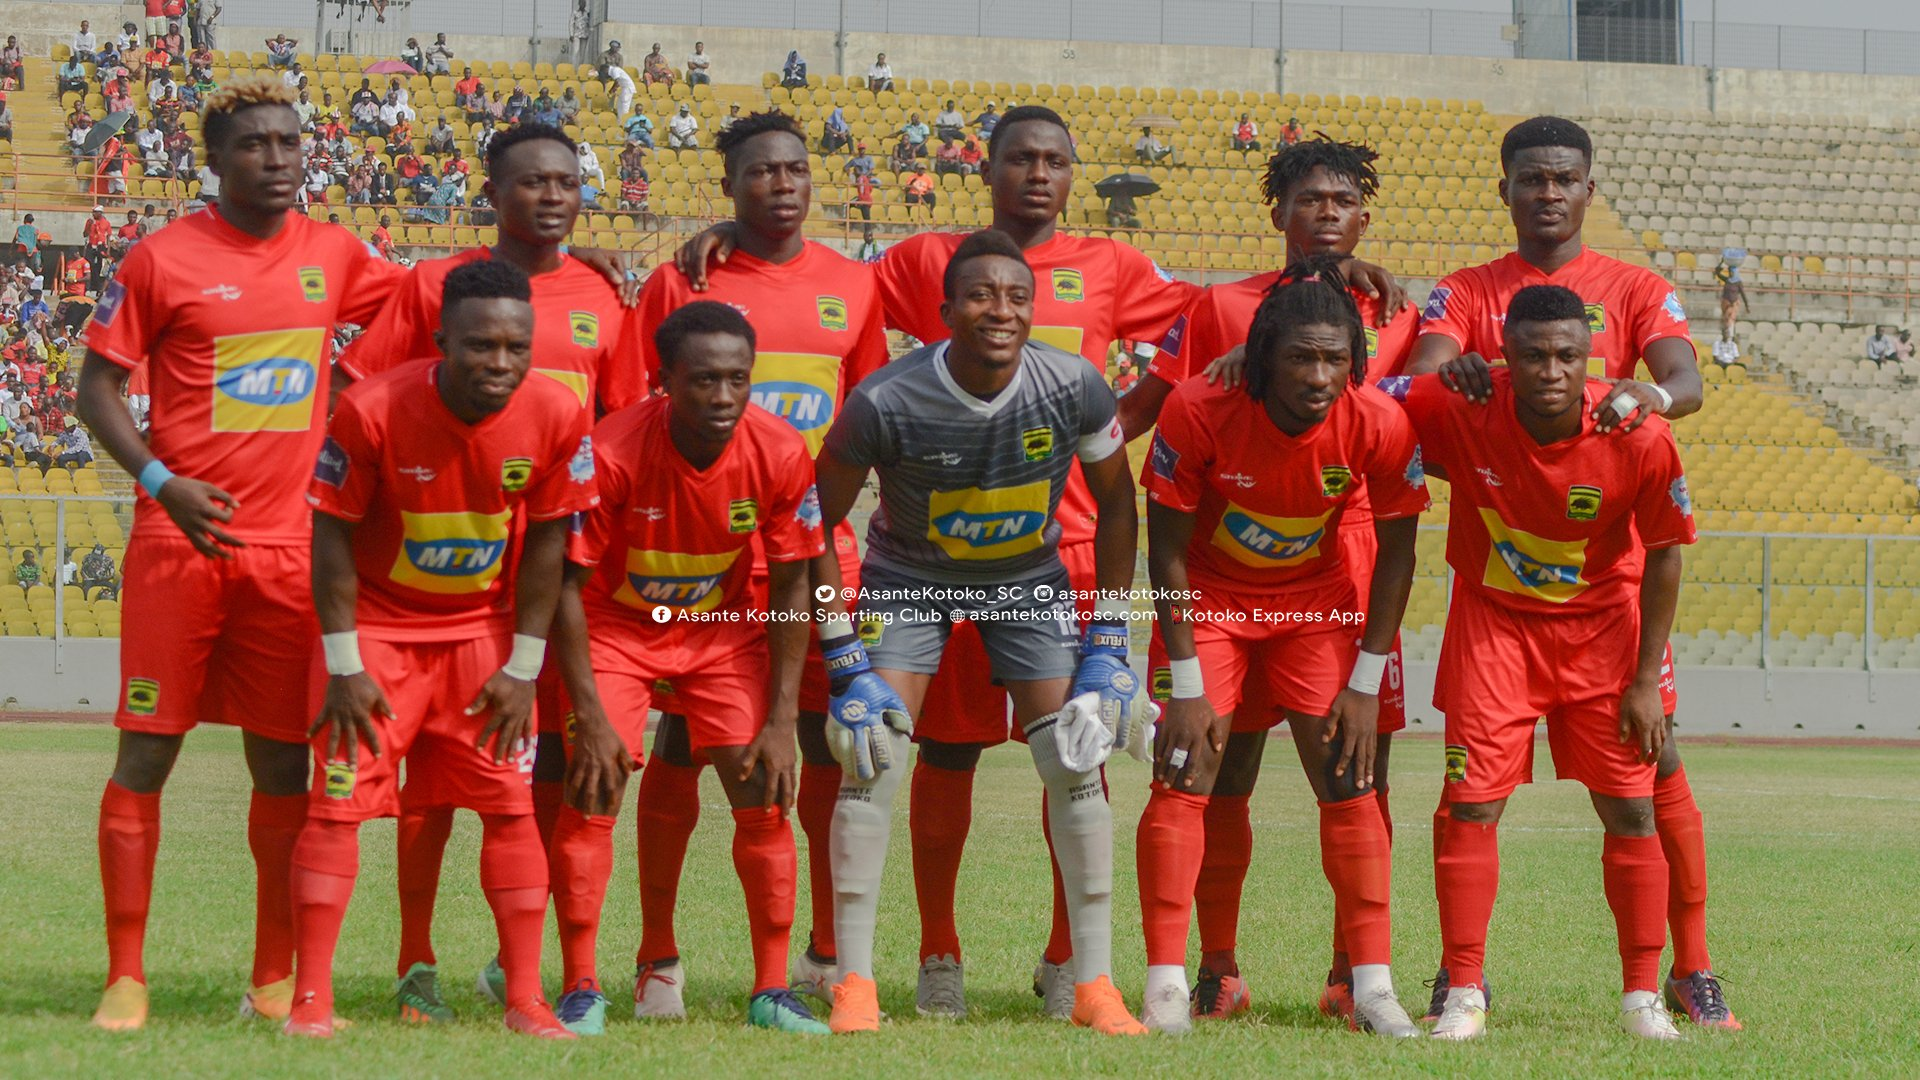 We will make Kotoko players celebrities - CEO Nana Yaw Amponsah